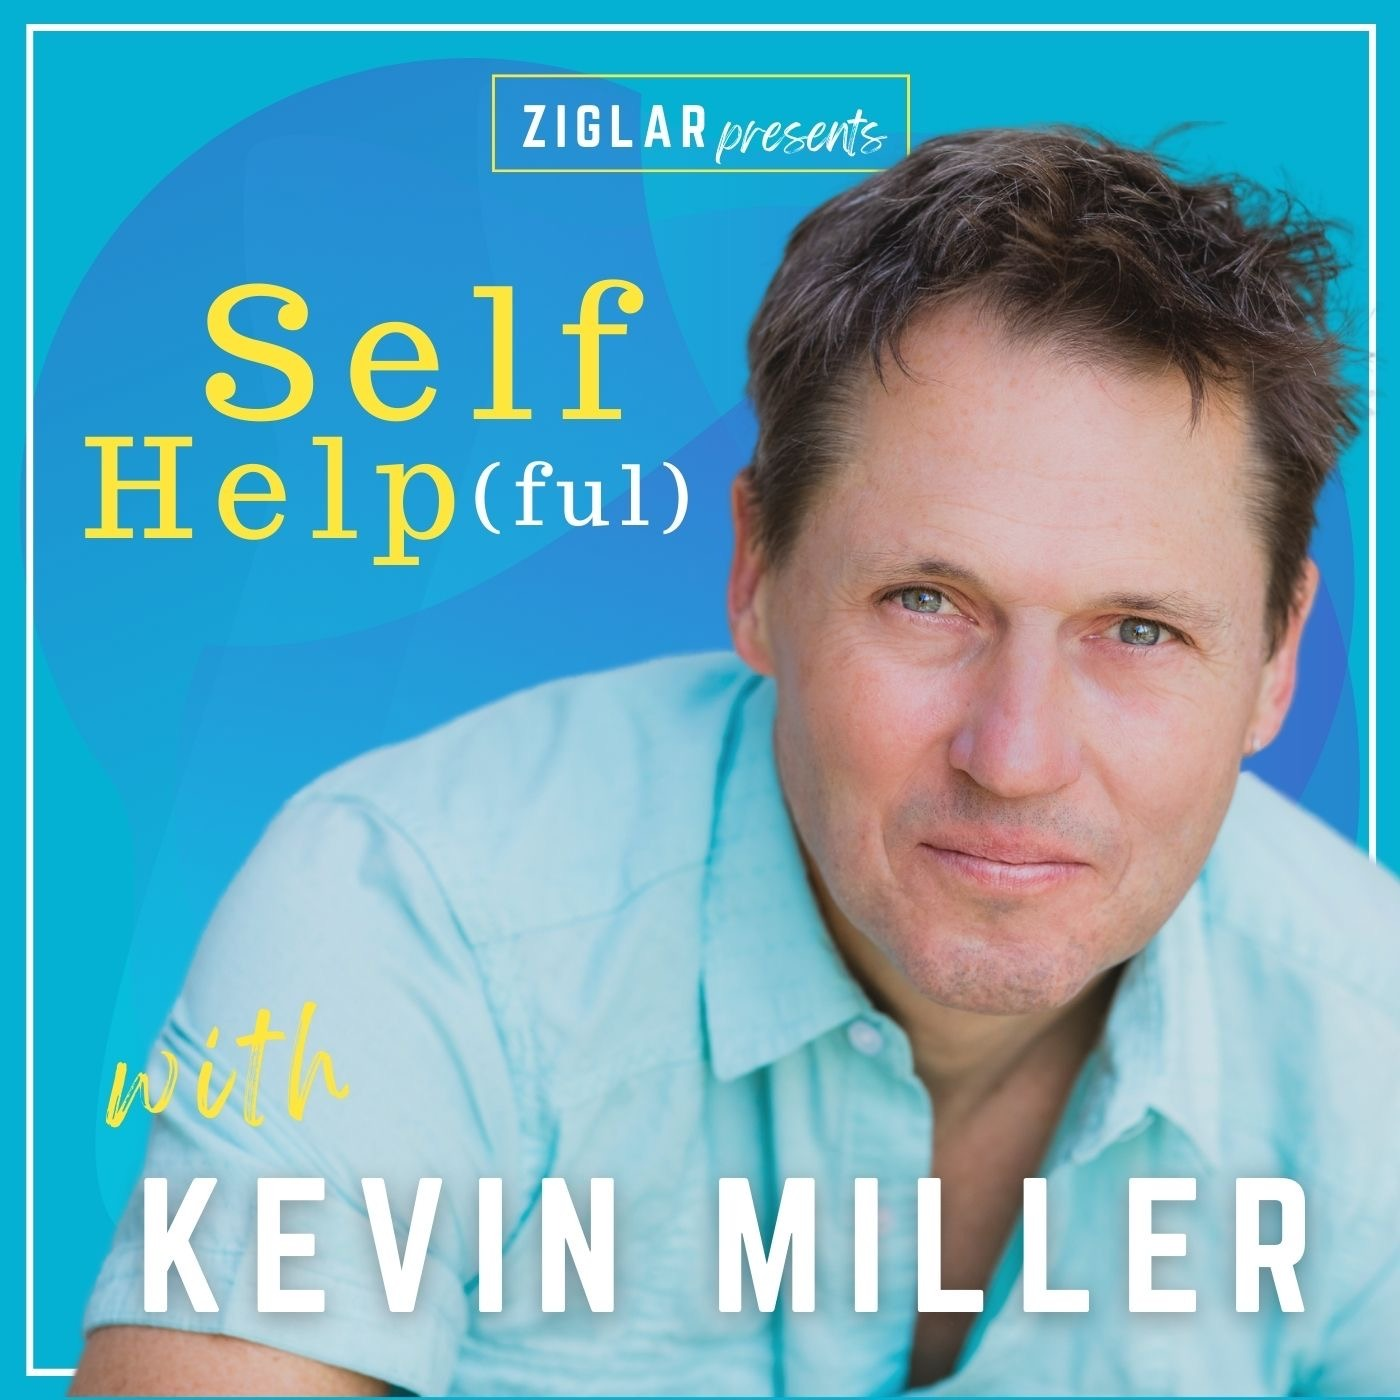 The Ziglar Show | Motivation & Inspiration to fuel your life